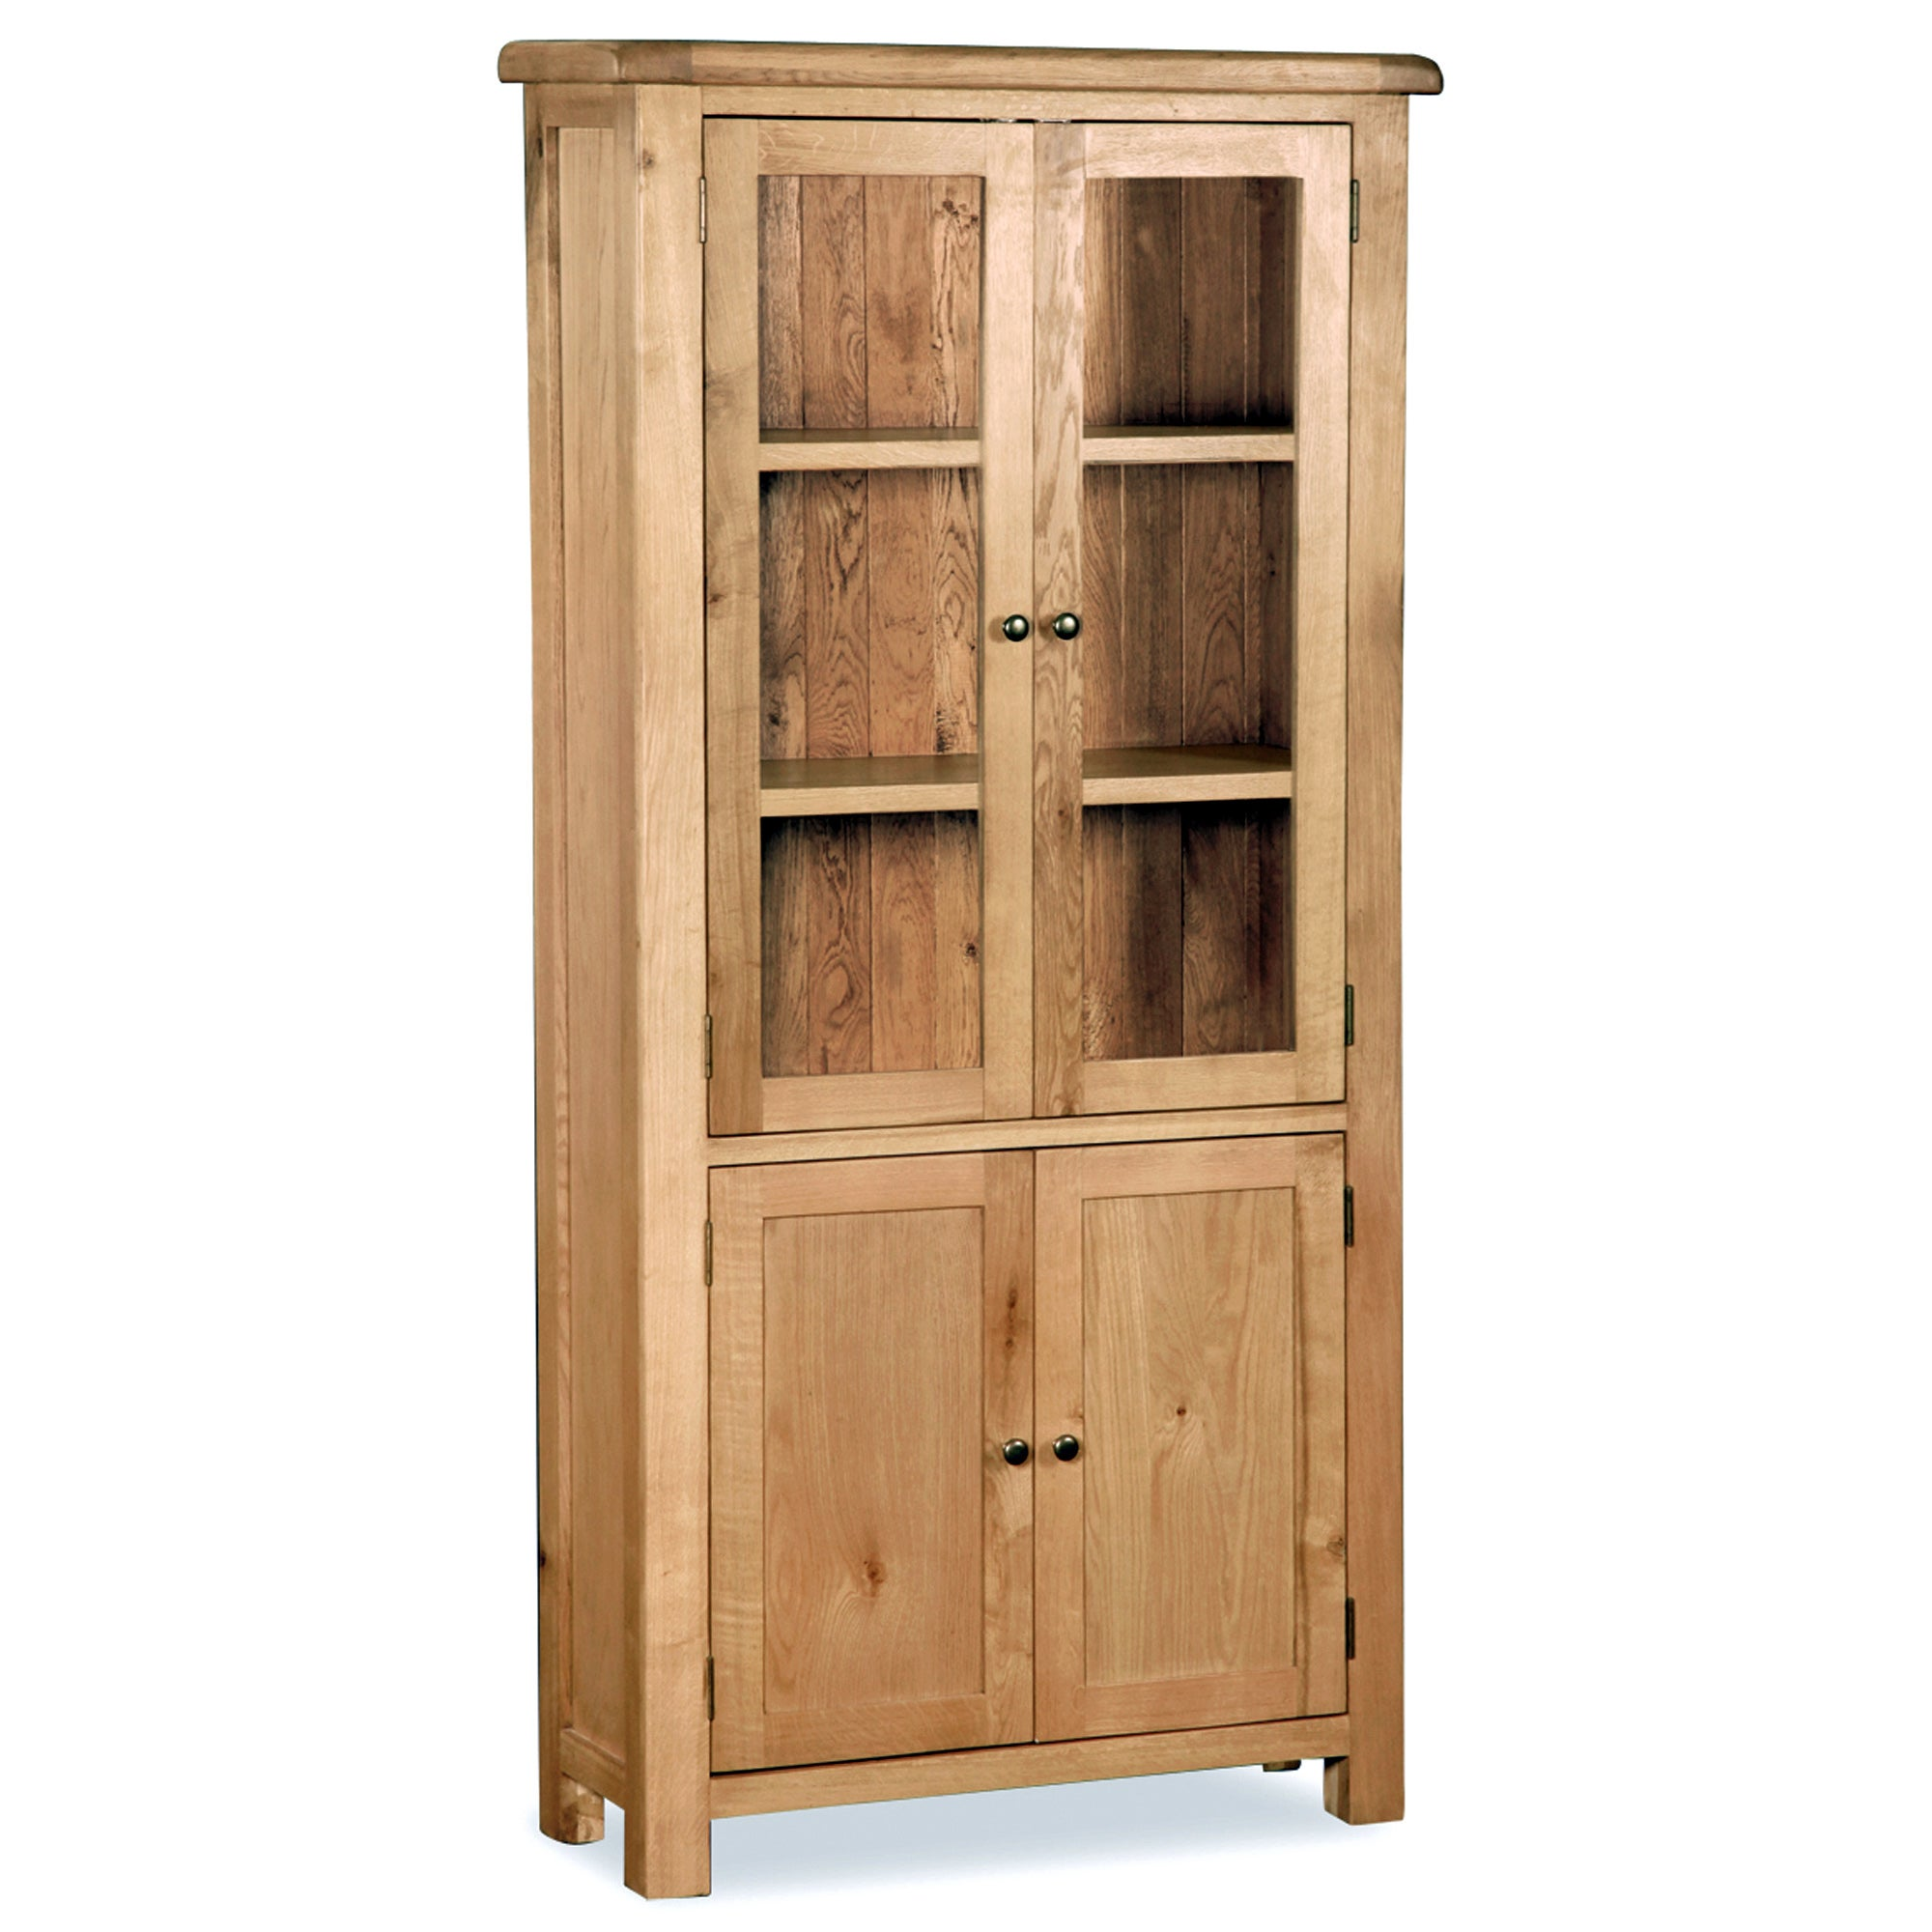 Aylesbury Oak Display Cabinet